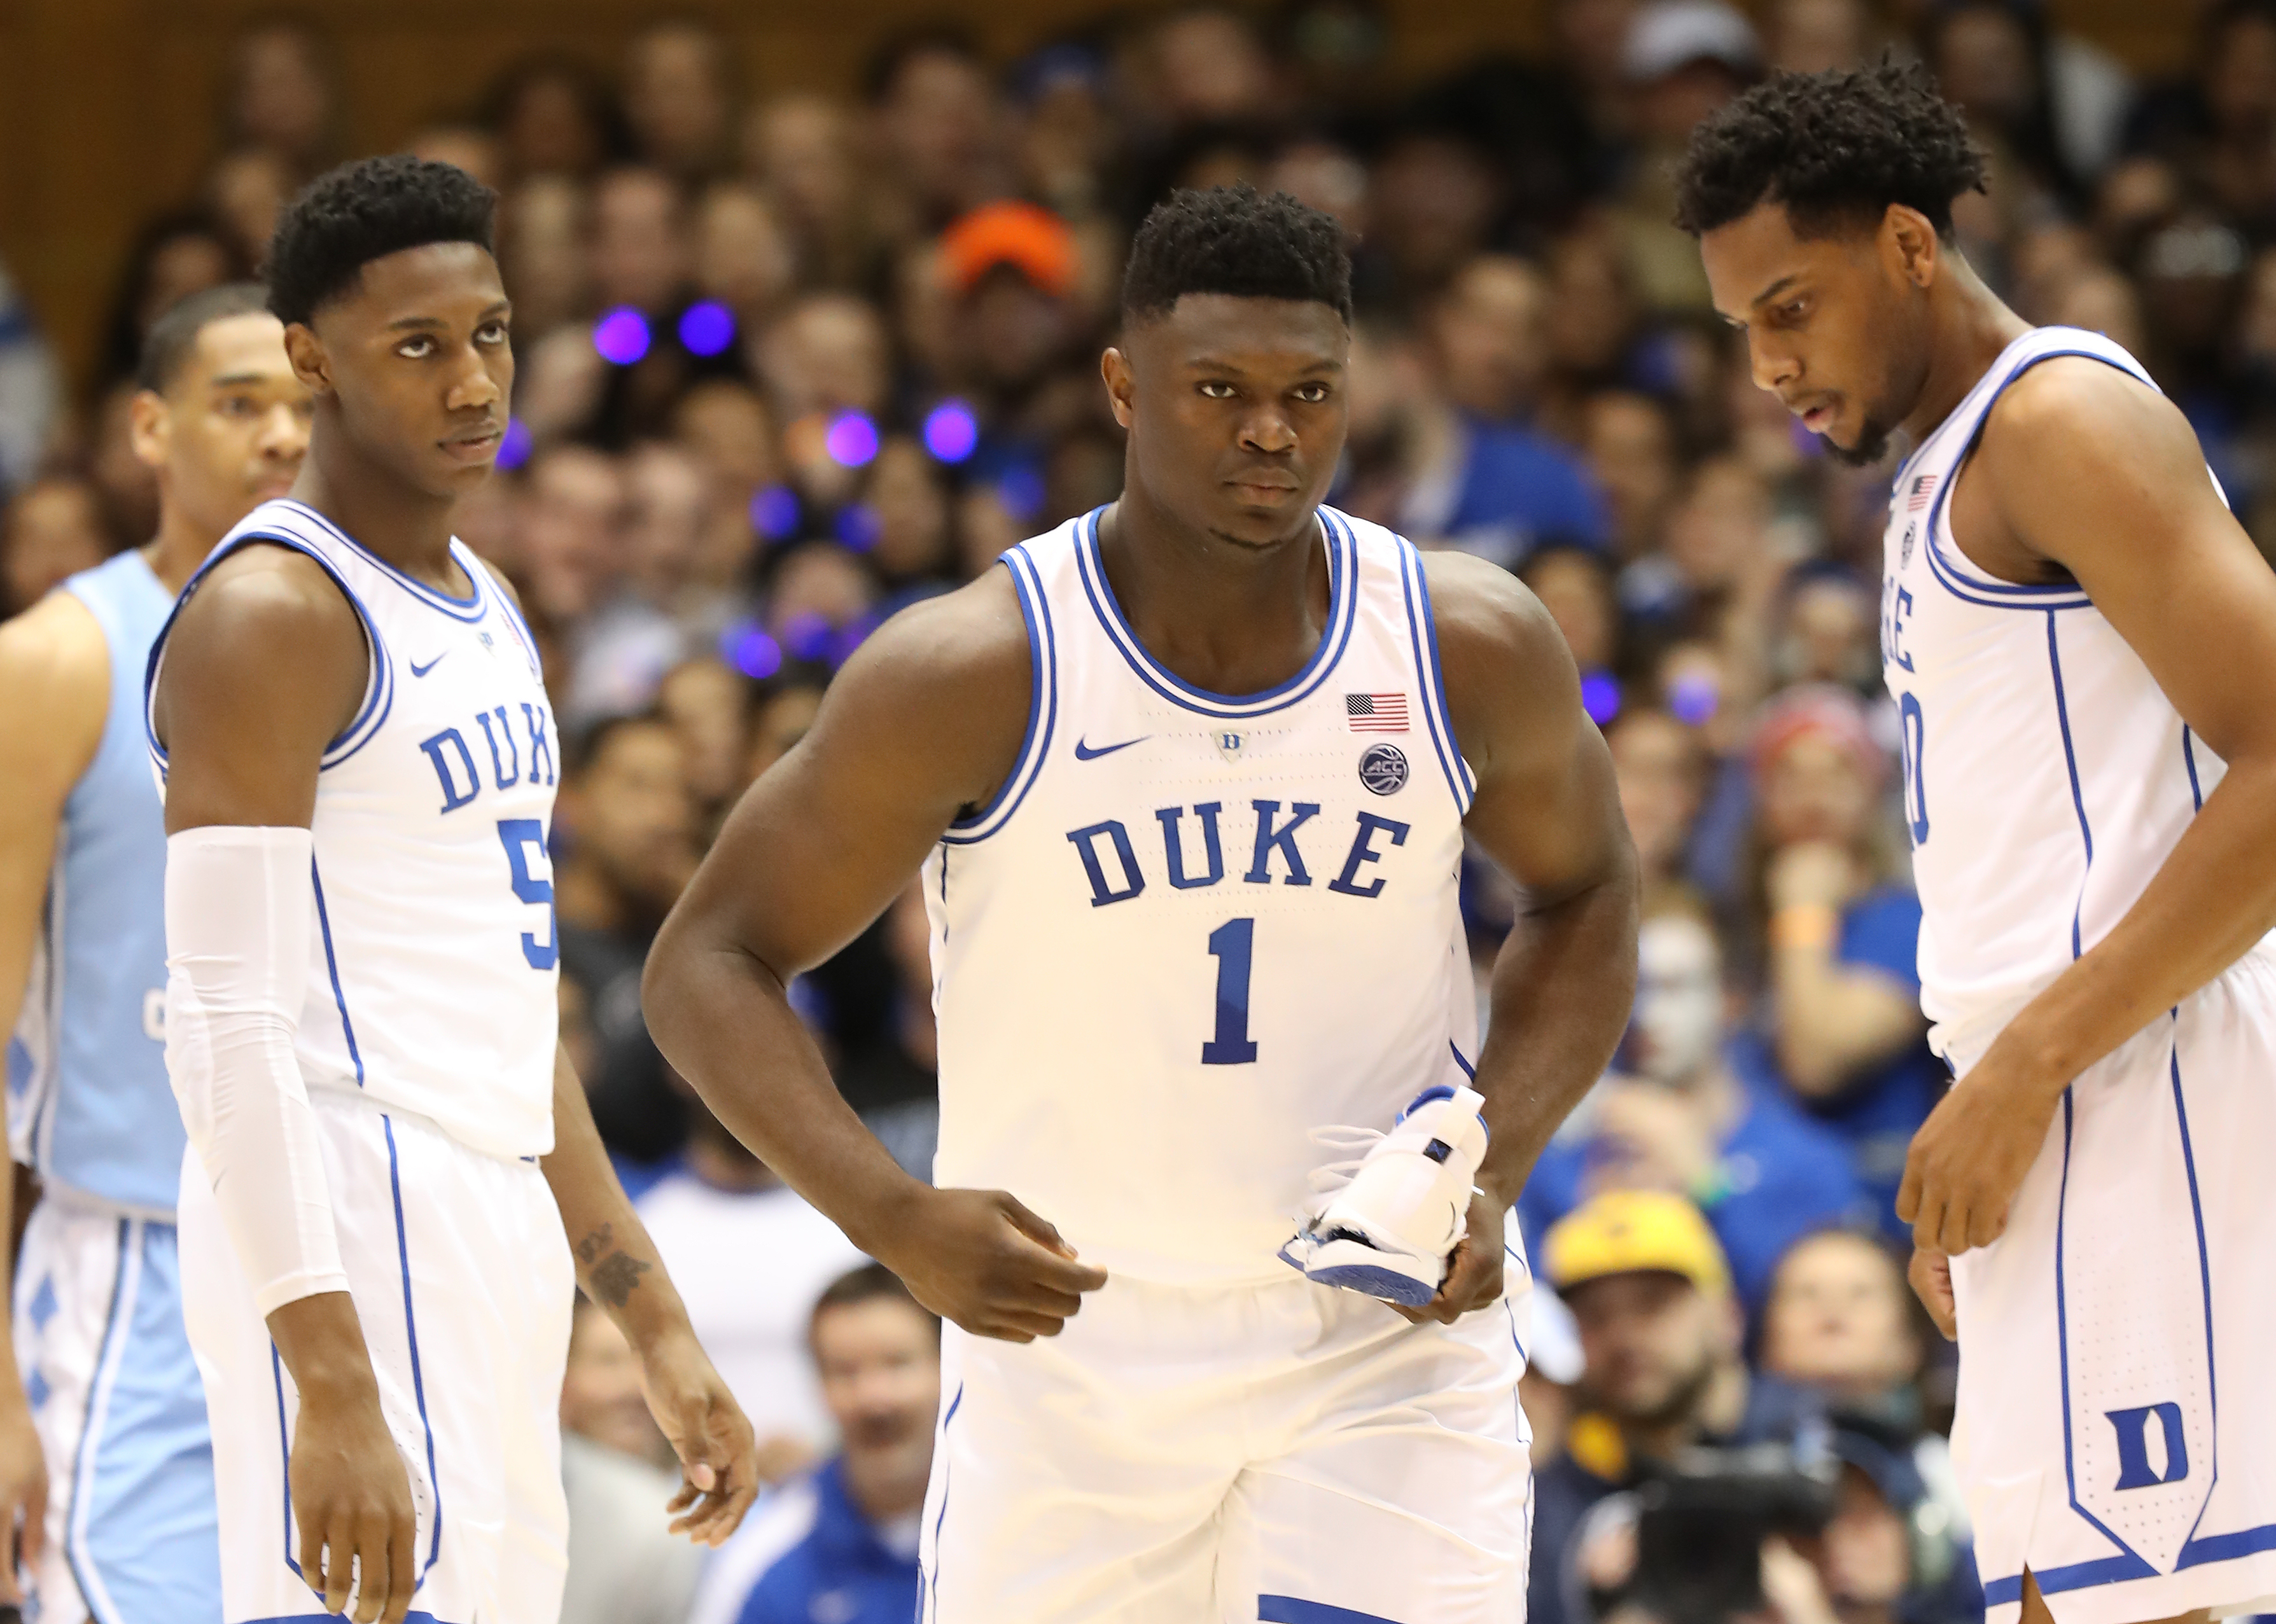 Zion Williamson shouldn't listen to anyone but himself on his decision to return to Duke